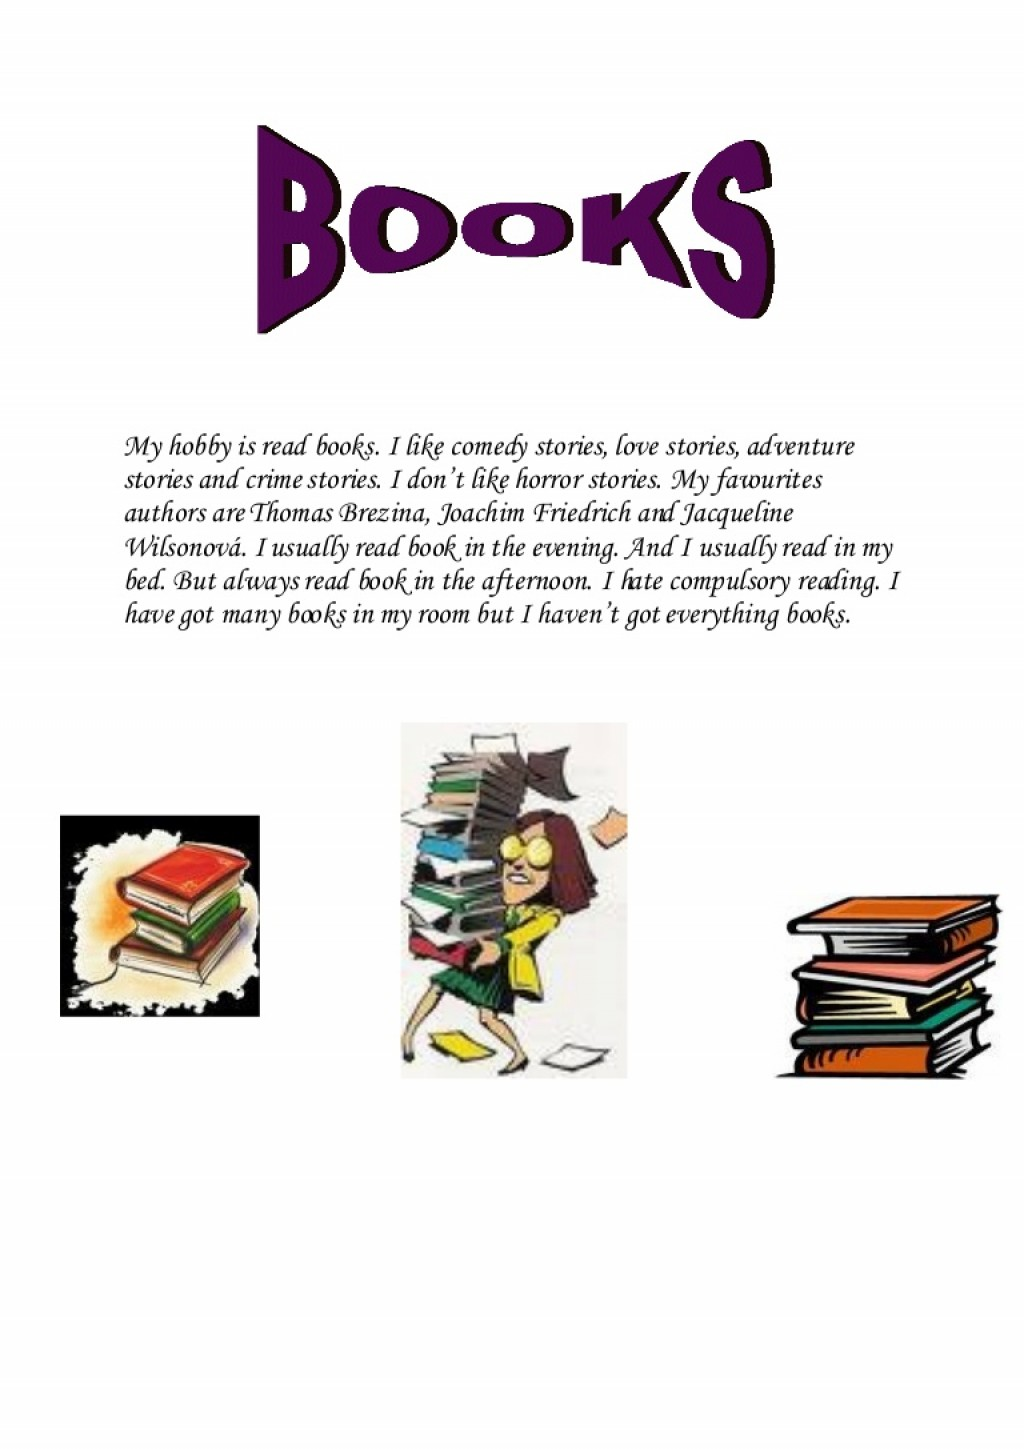 008 Read My Essay Hobby Is Booksverca Thumbnail Unusual Reddit For Free Online Large